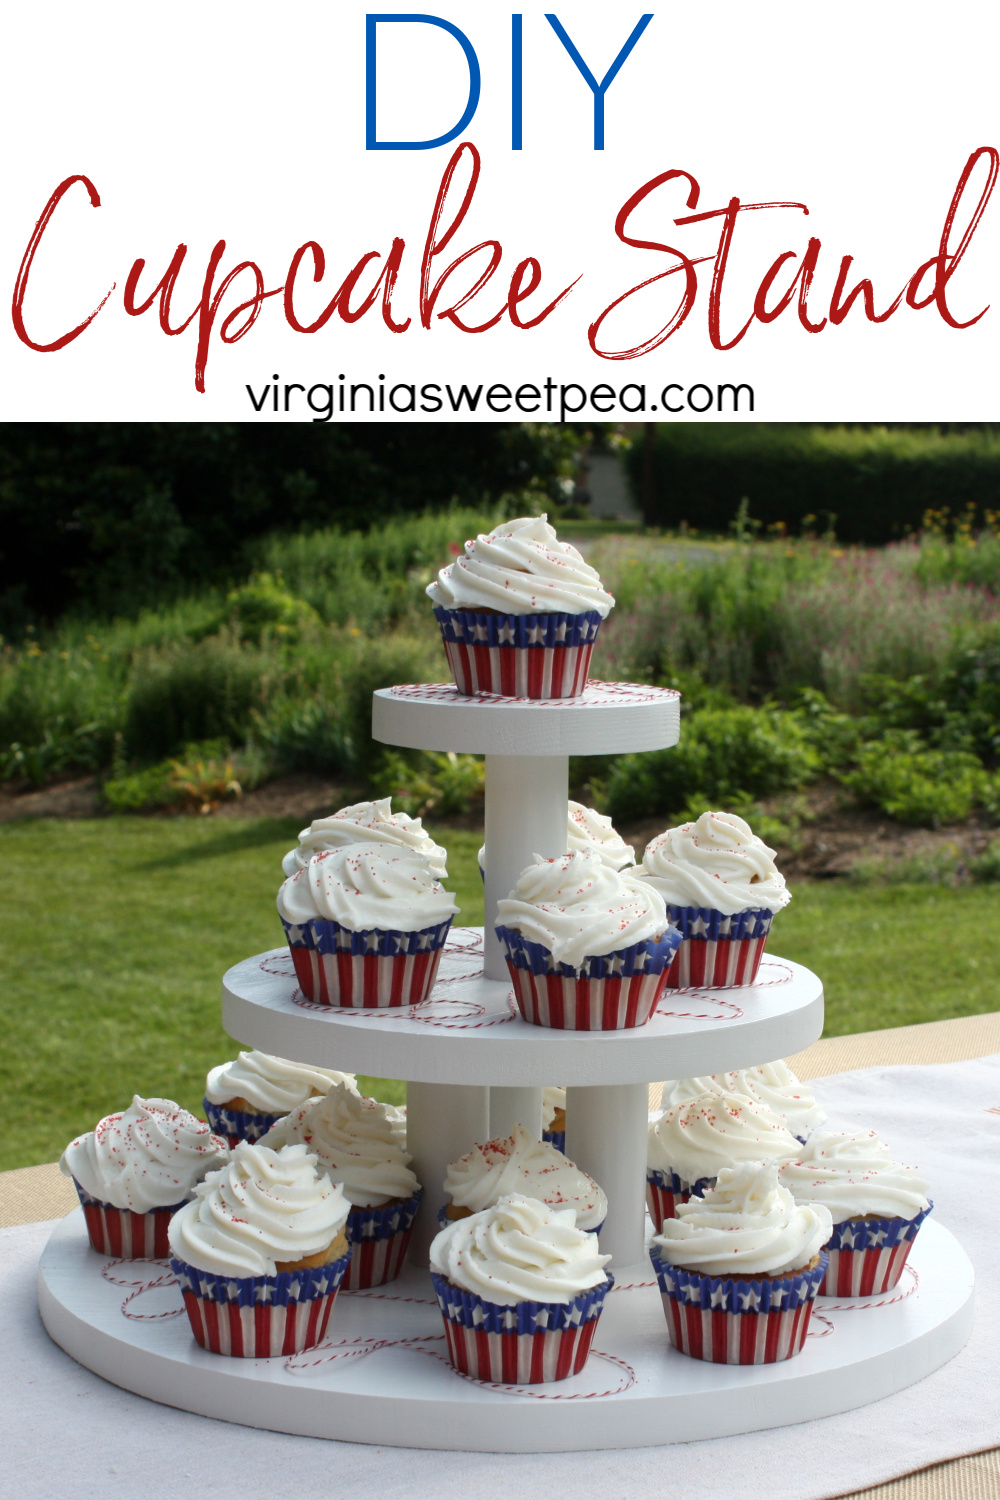 DIY Cupcake Stand - Learn how to make a cupcake stand to use to display cupcakes or other treats for your next party or special occasion. #woodworking #cupcakestand #diycupcakestand #cupcakedisplay #diycupcakedisplay via @spaula